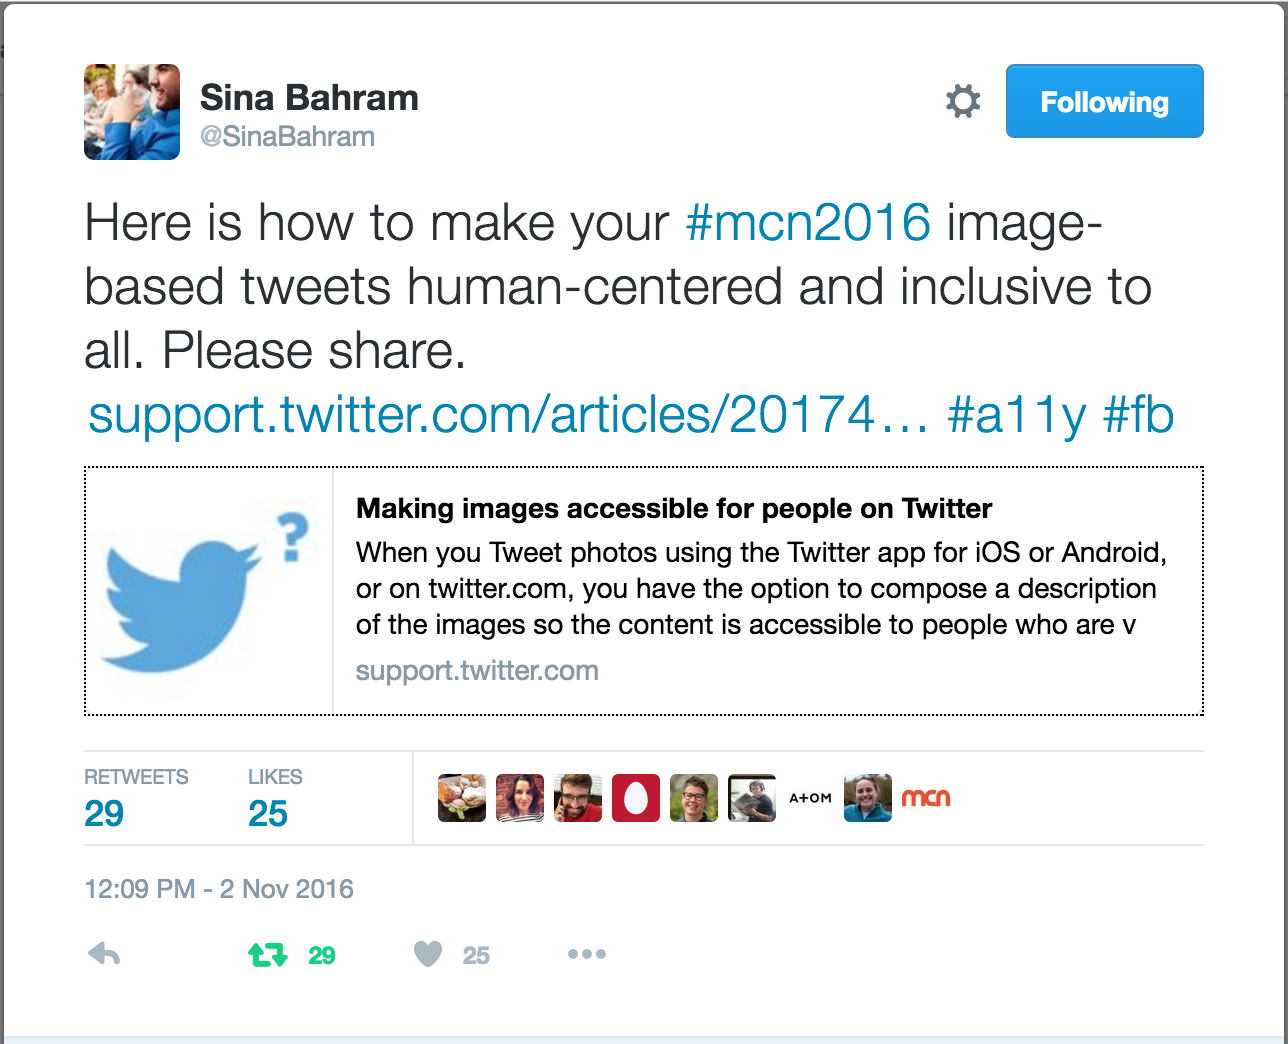 "Tweet by @SinaBahram: ""Here is how to make your #mcn2016 image-based tweets human-centered and inclusive to all. Please share"""